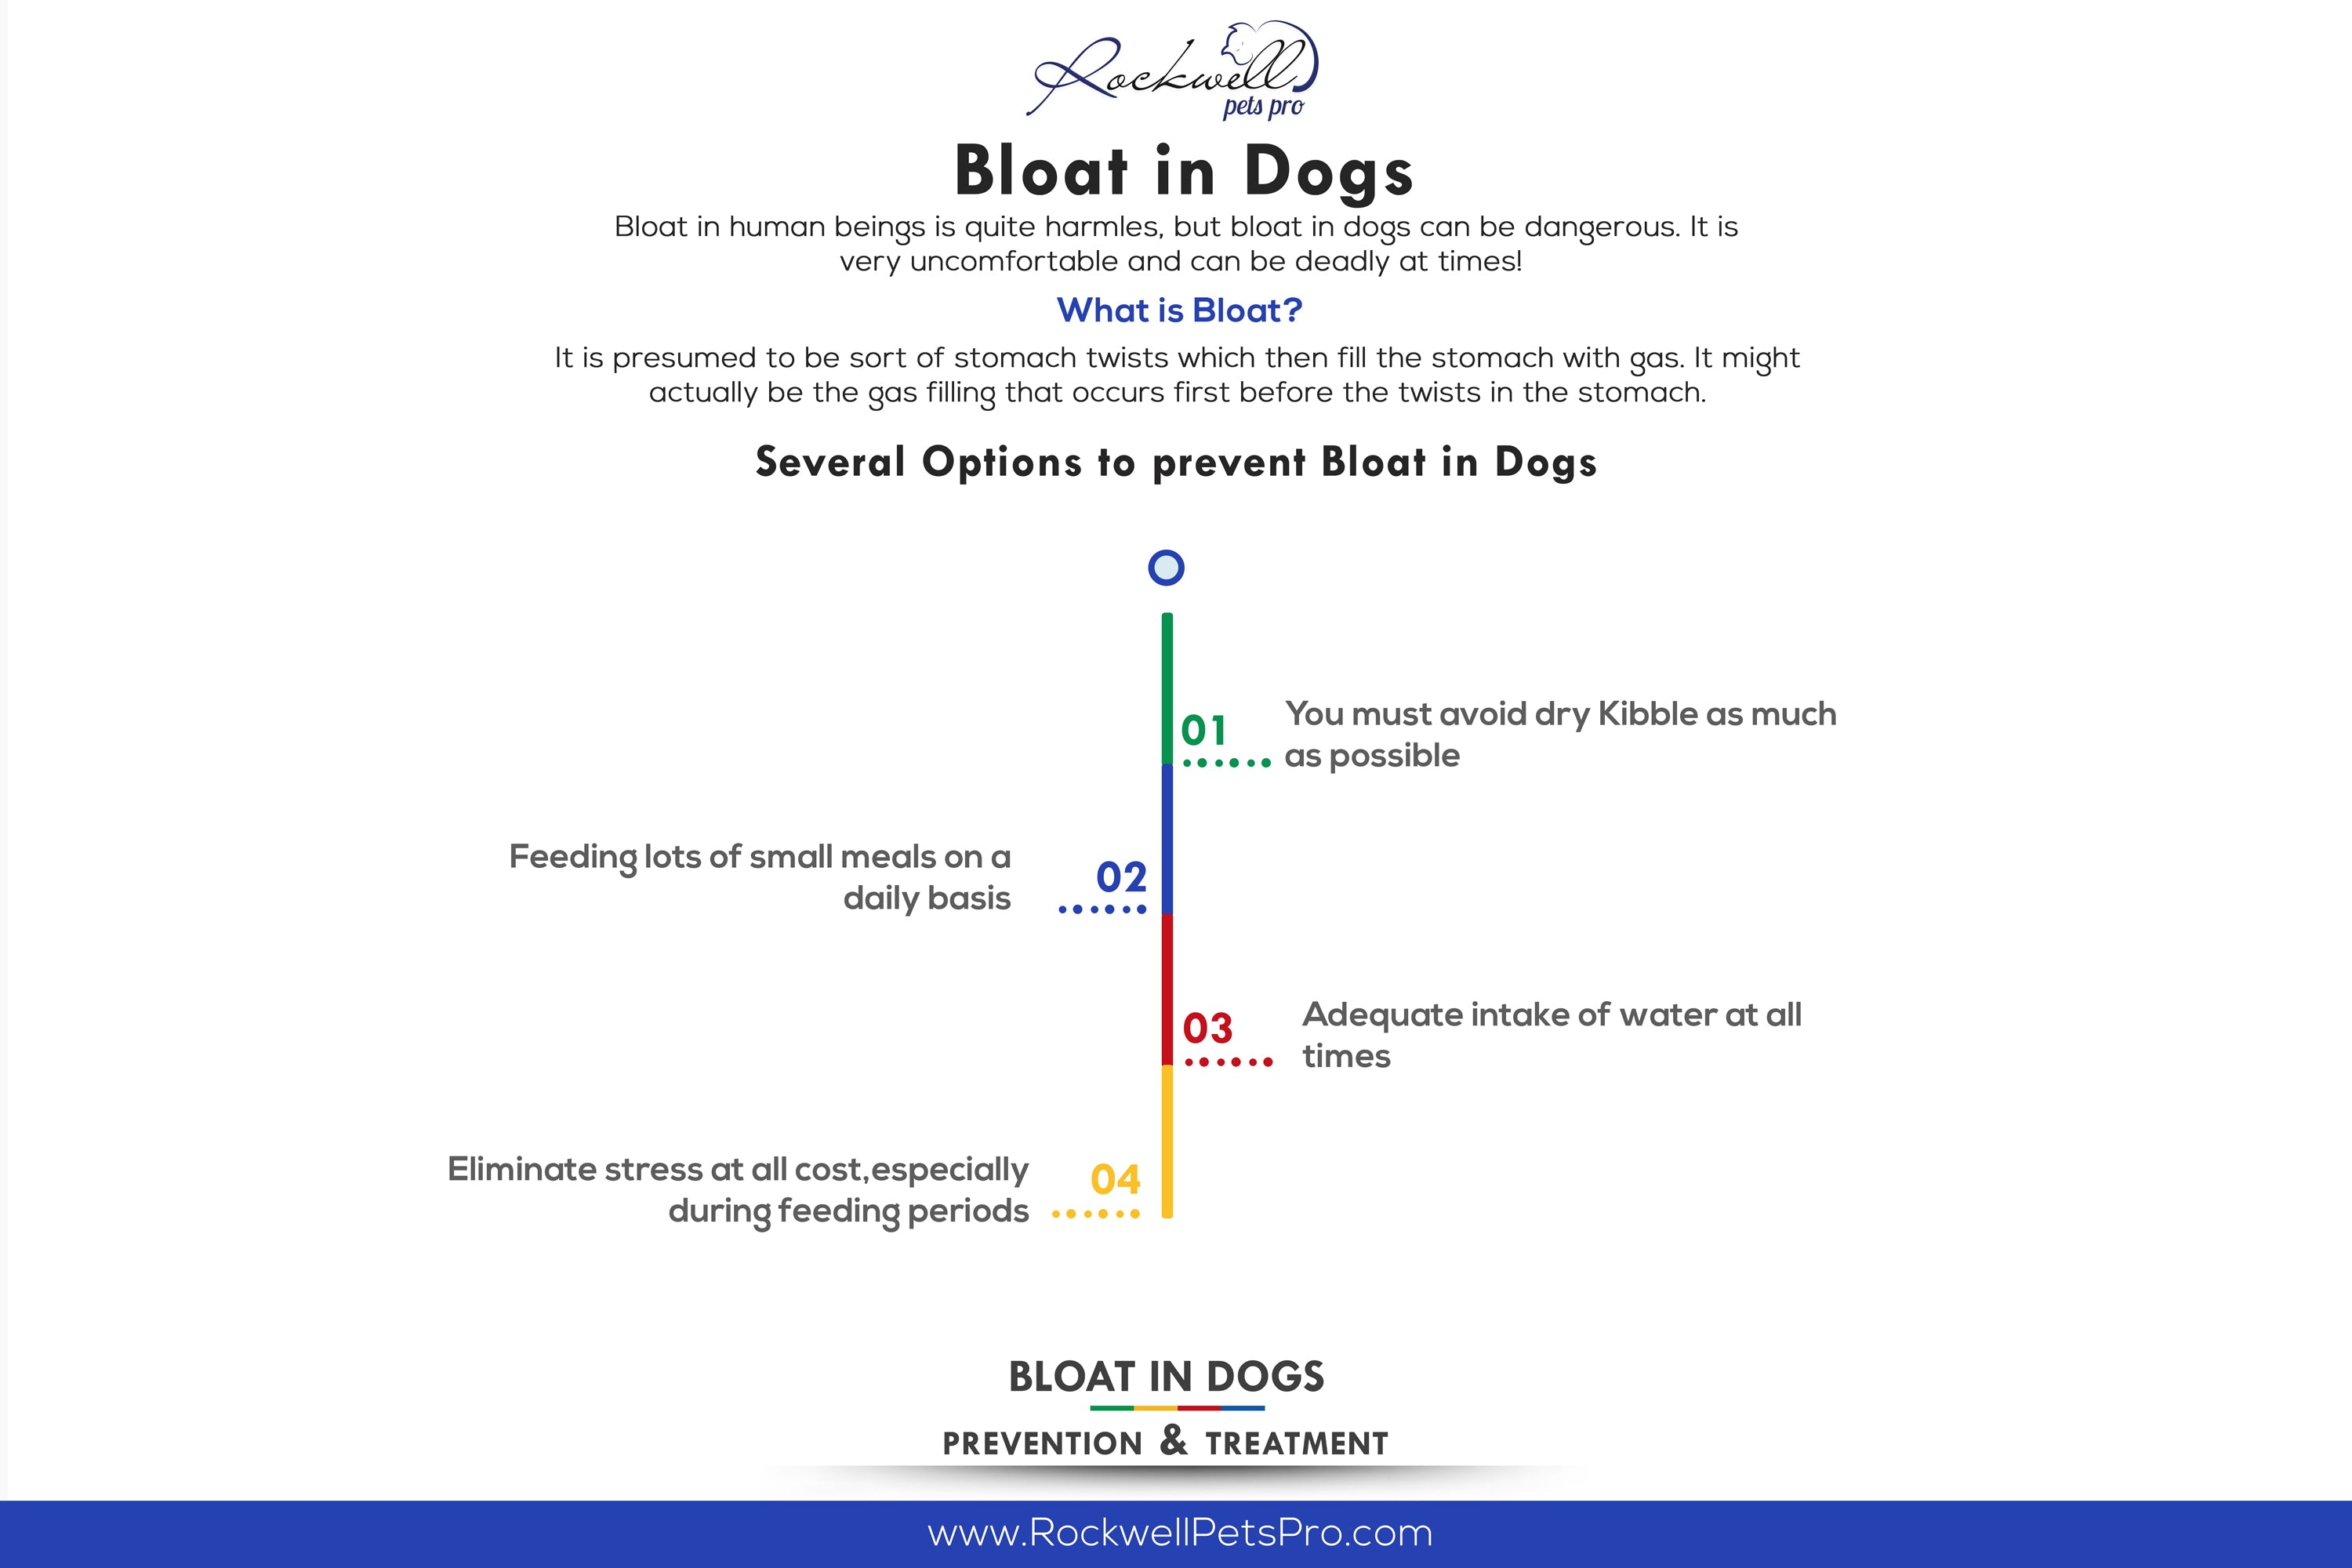 Bloat in Dogs